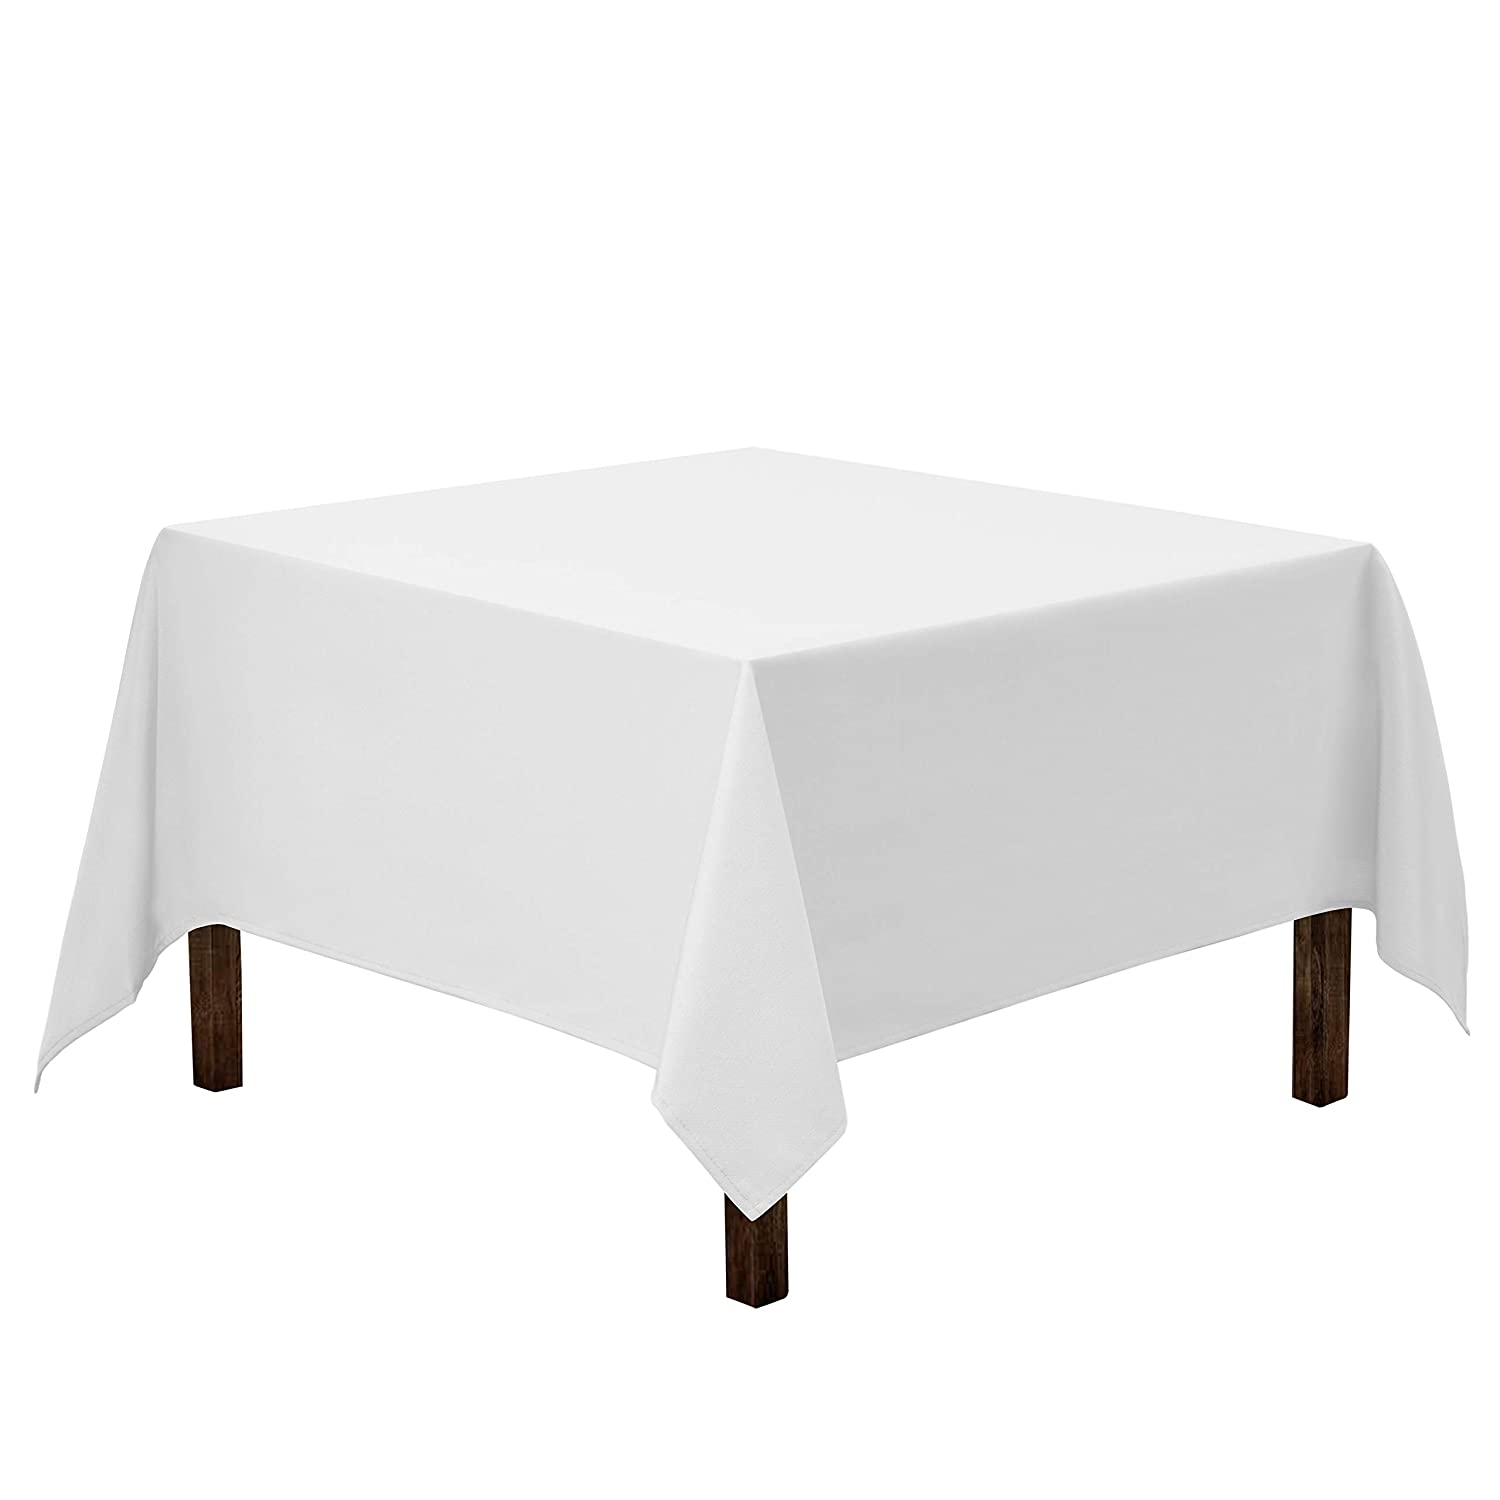 Gee Di Moda Square Tablecloth - 85 x 85 Inch - White Square Table Cloth for Square or Round Tables in Washable Polyester - Great for Buffet Table, Parties, Holiday Dinner, Wedding & More